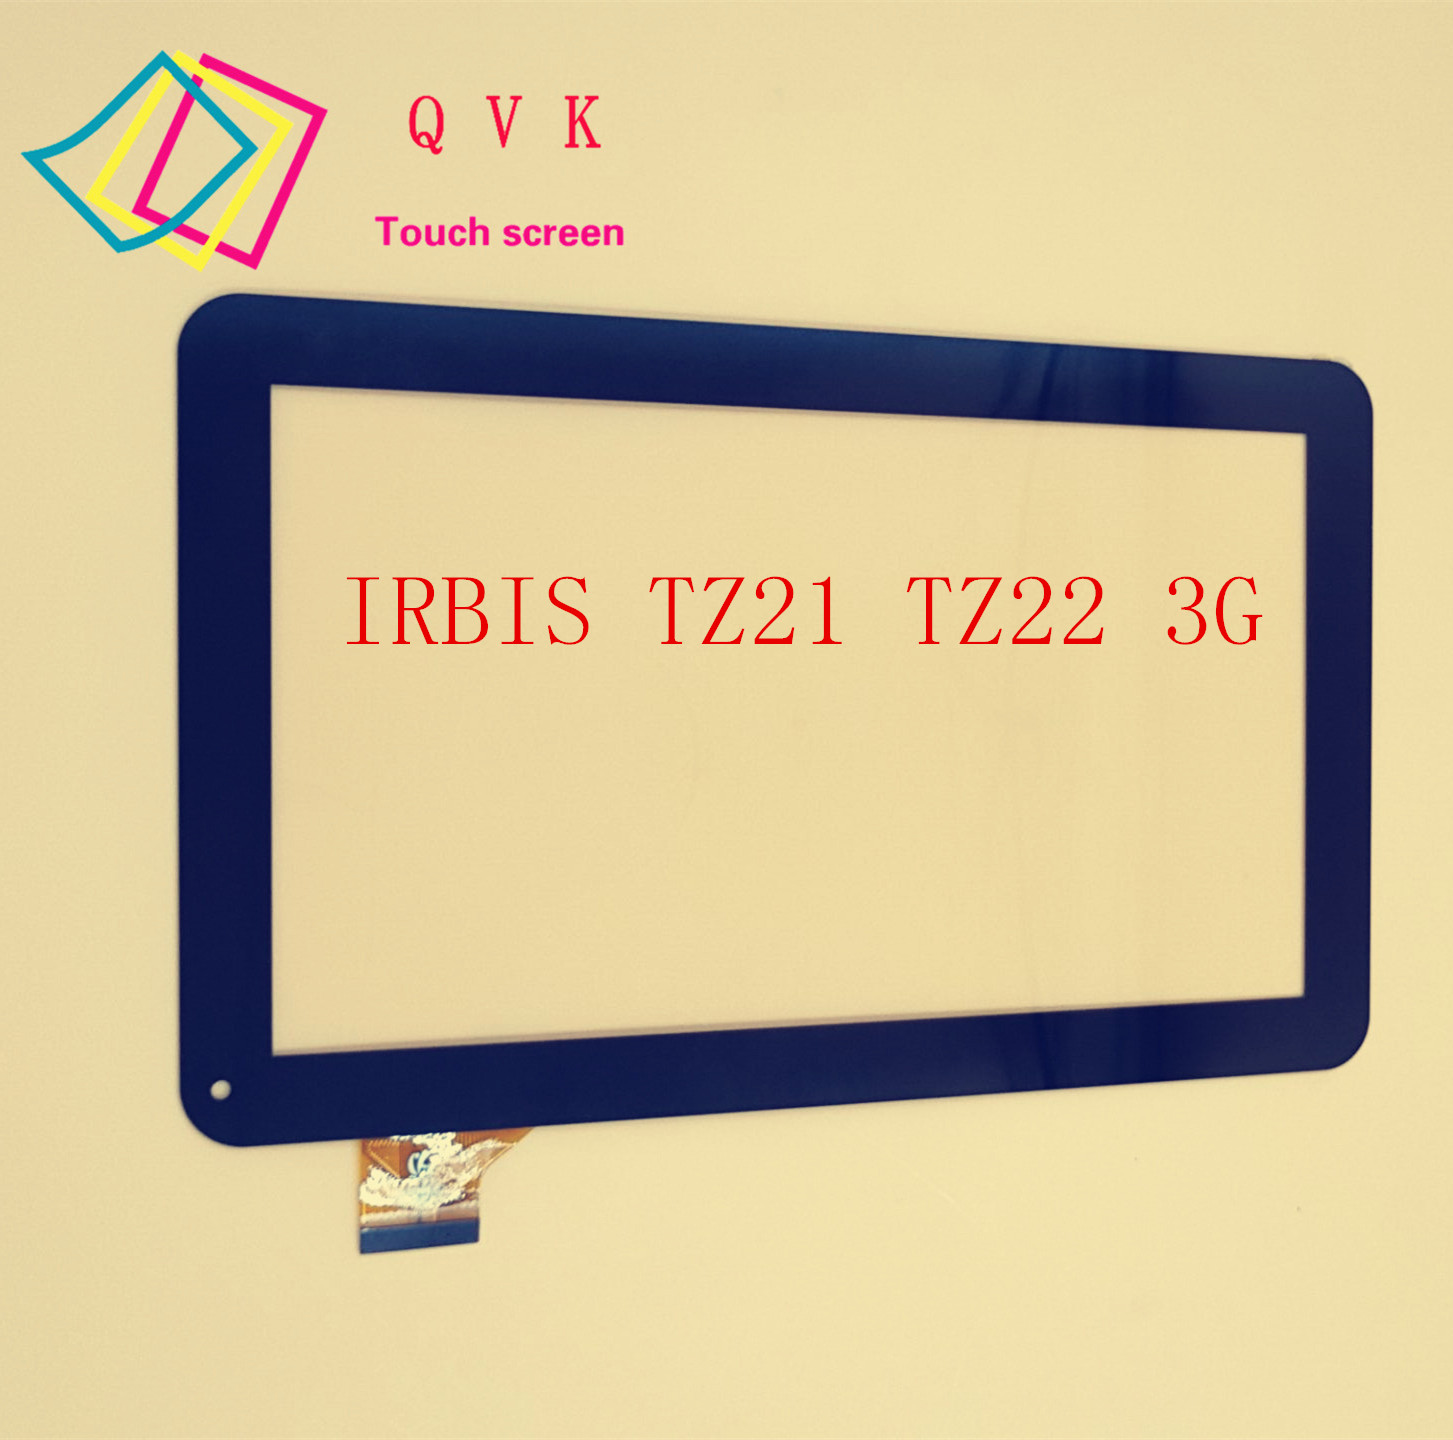 Black IRBIS TZ21 TZ22 3G 10.1inch tablet pc capacitive touch screen panel digitizer glass new bassoon c tone great material than maple case bass oboe